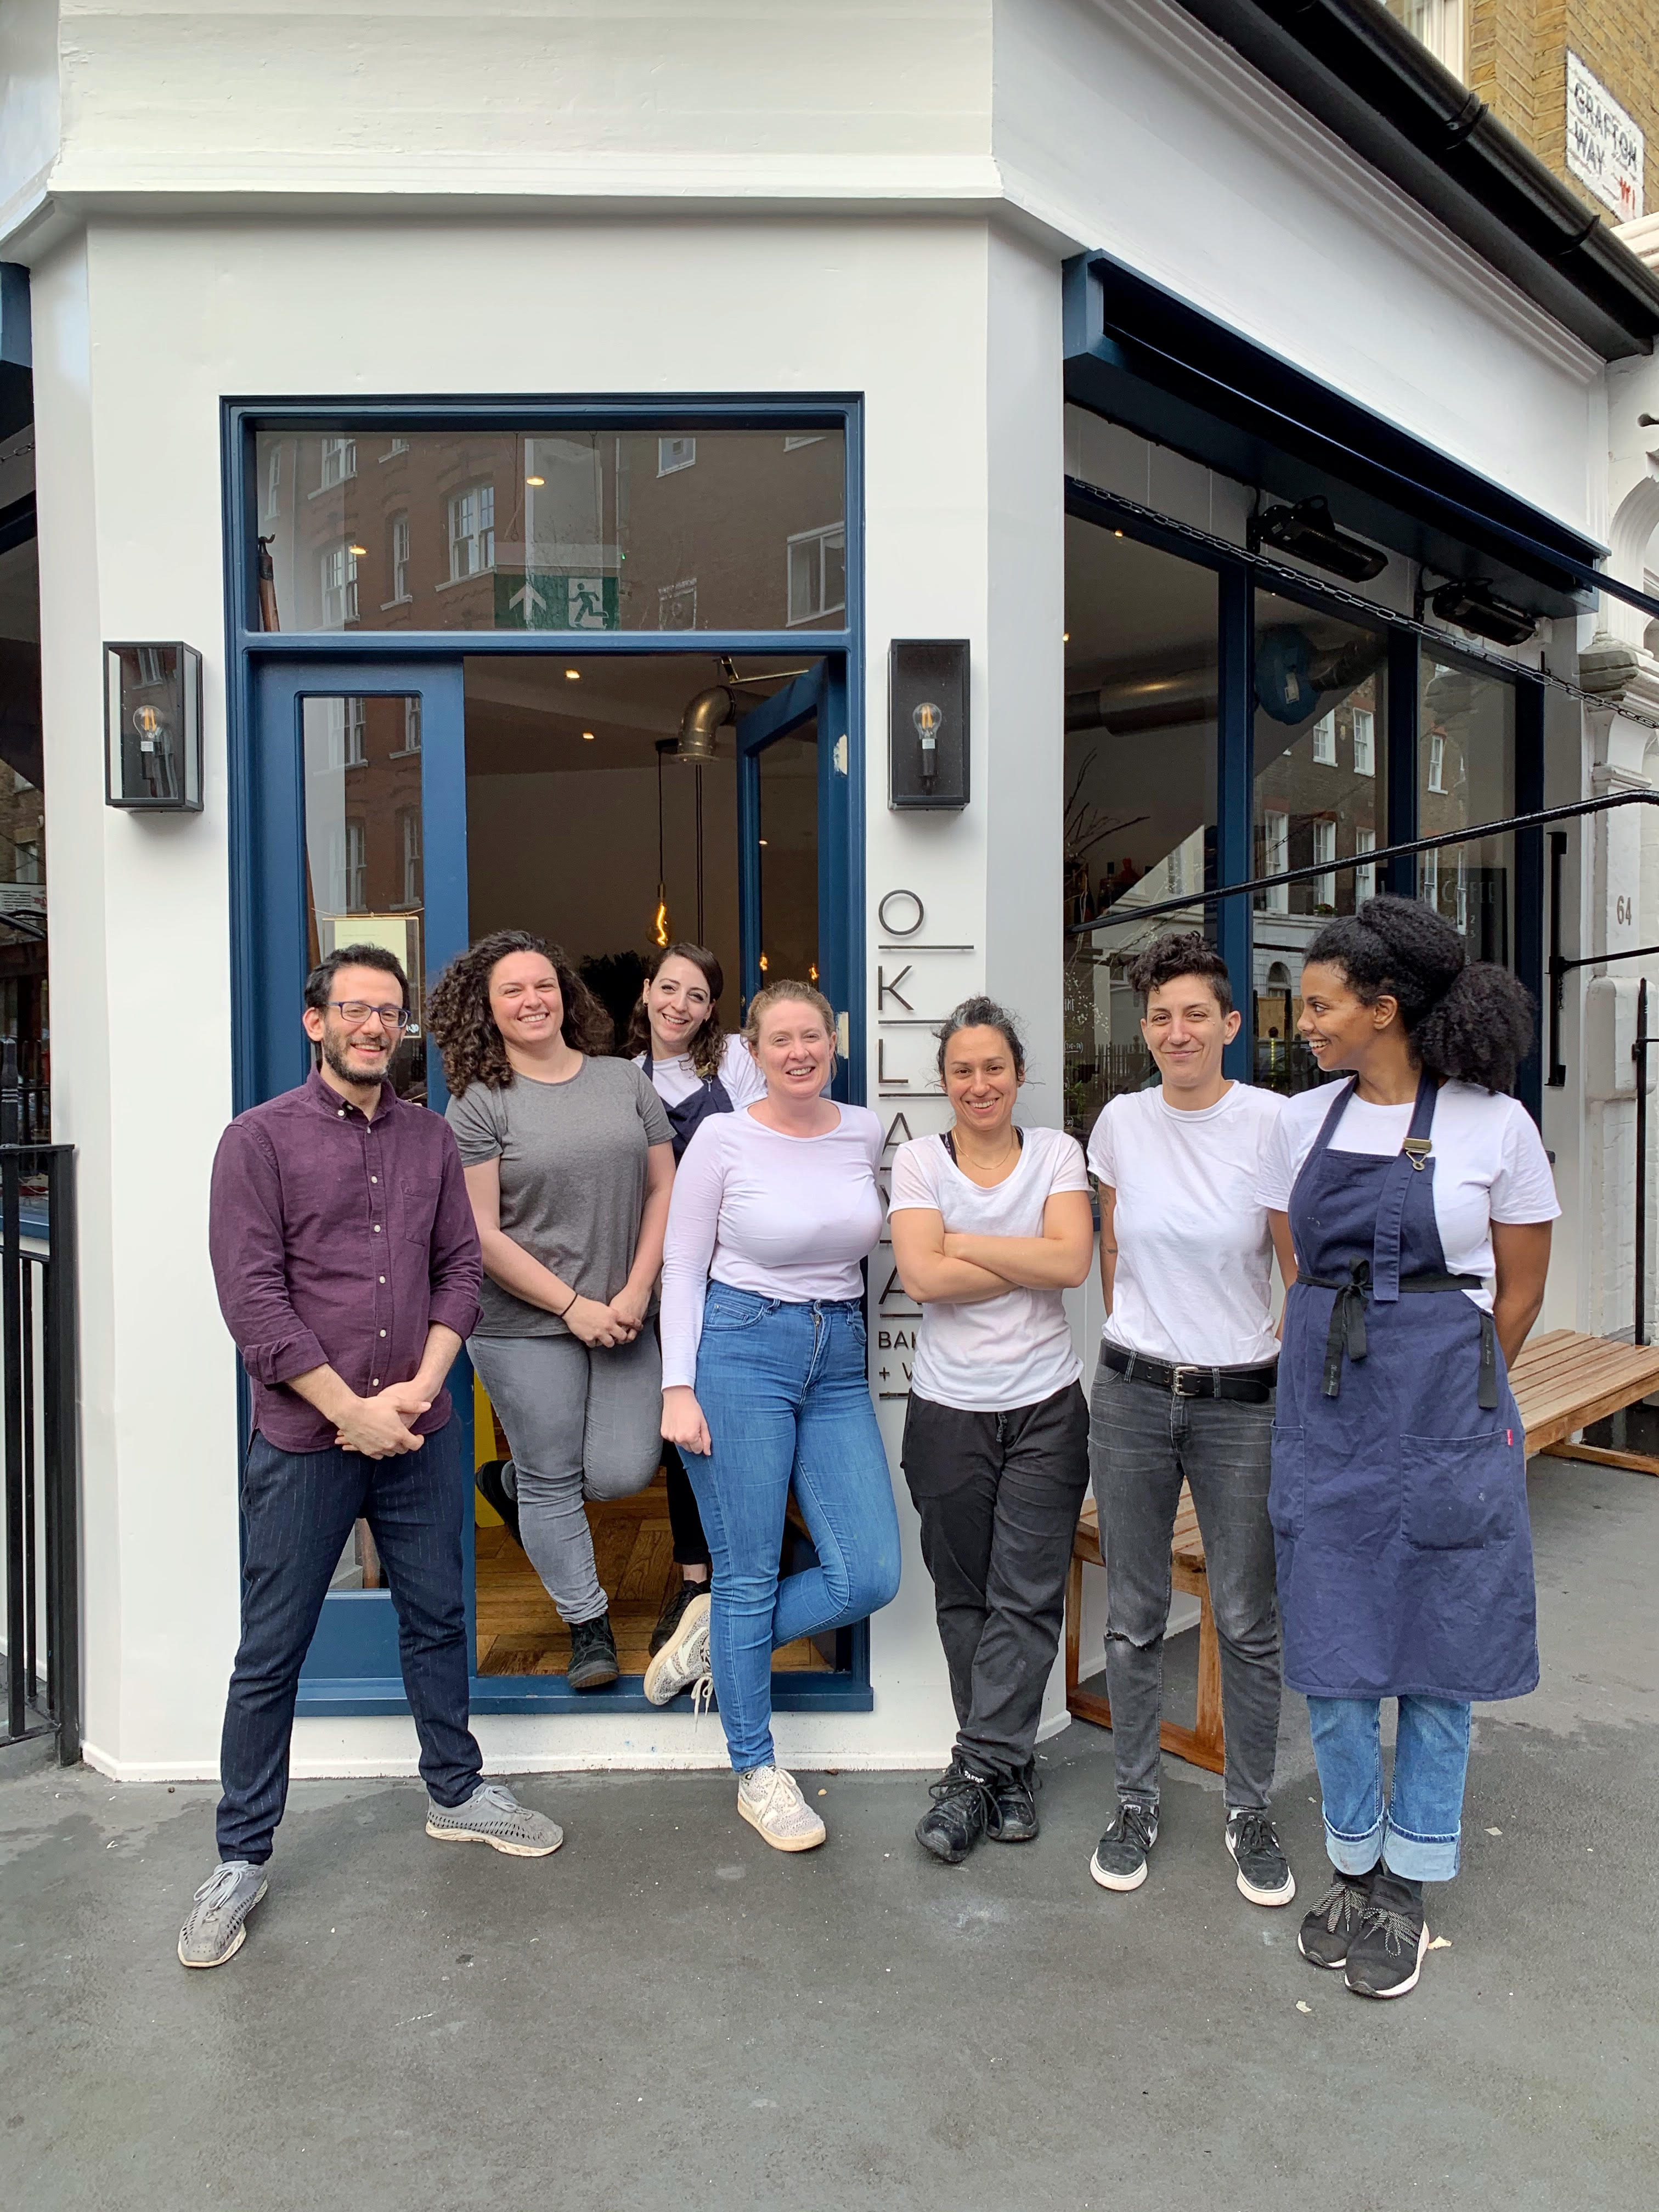 The Oklava team outside its recently opened Fitzrovia bakery and wine bar has challenged Home Secretary Priti Patel over the government's recently announced immigration system overhaul